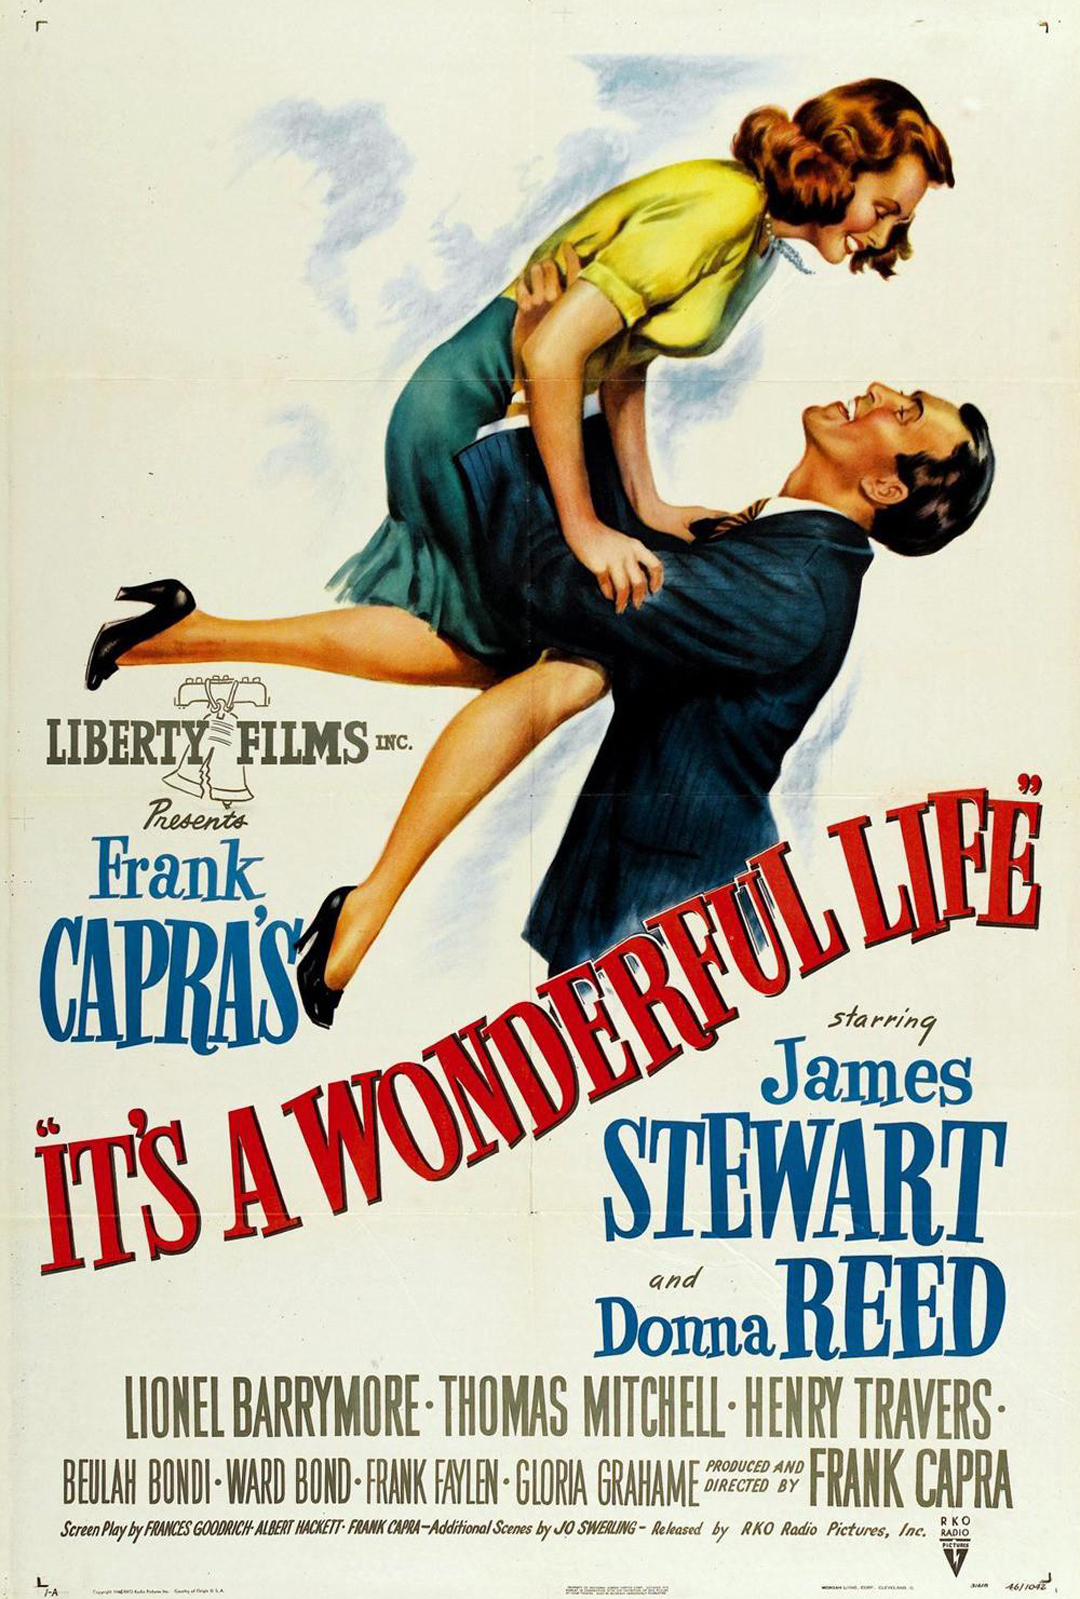 Come see 'It's a Wonderful Life' at the historic Royal Theater in Danville on Sunday evening!